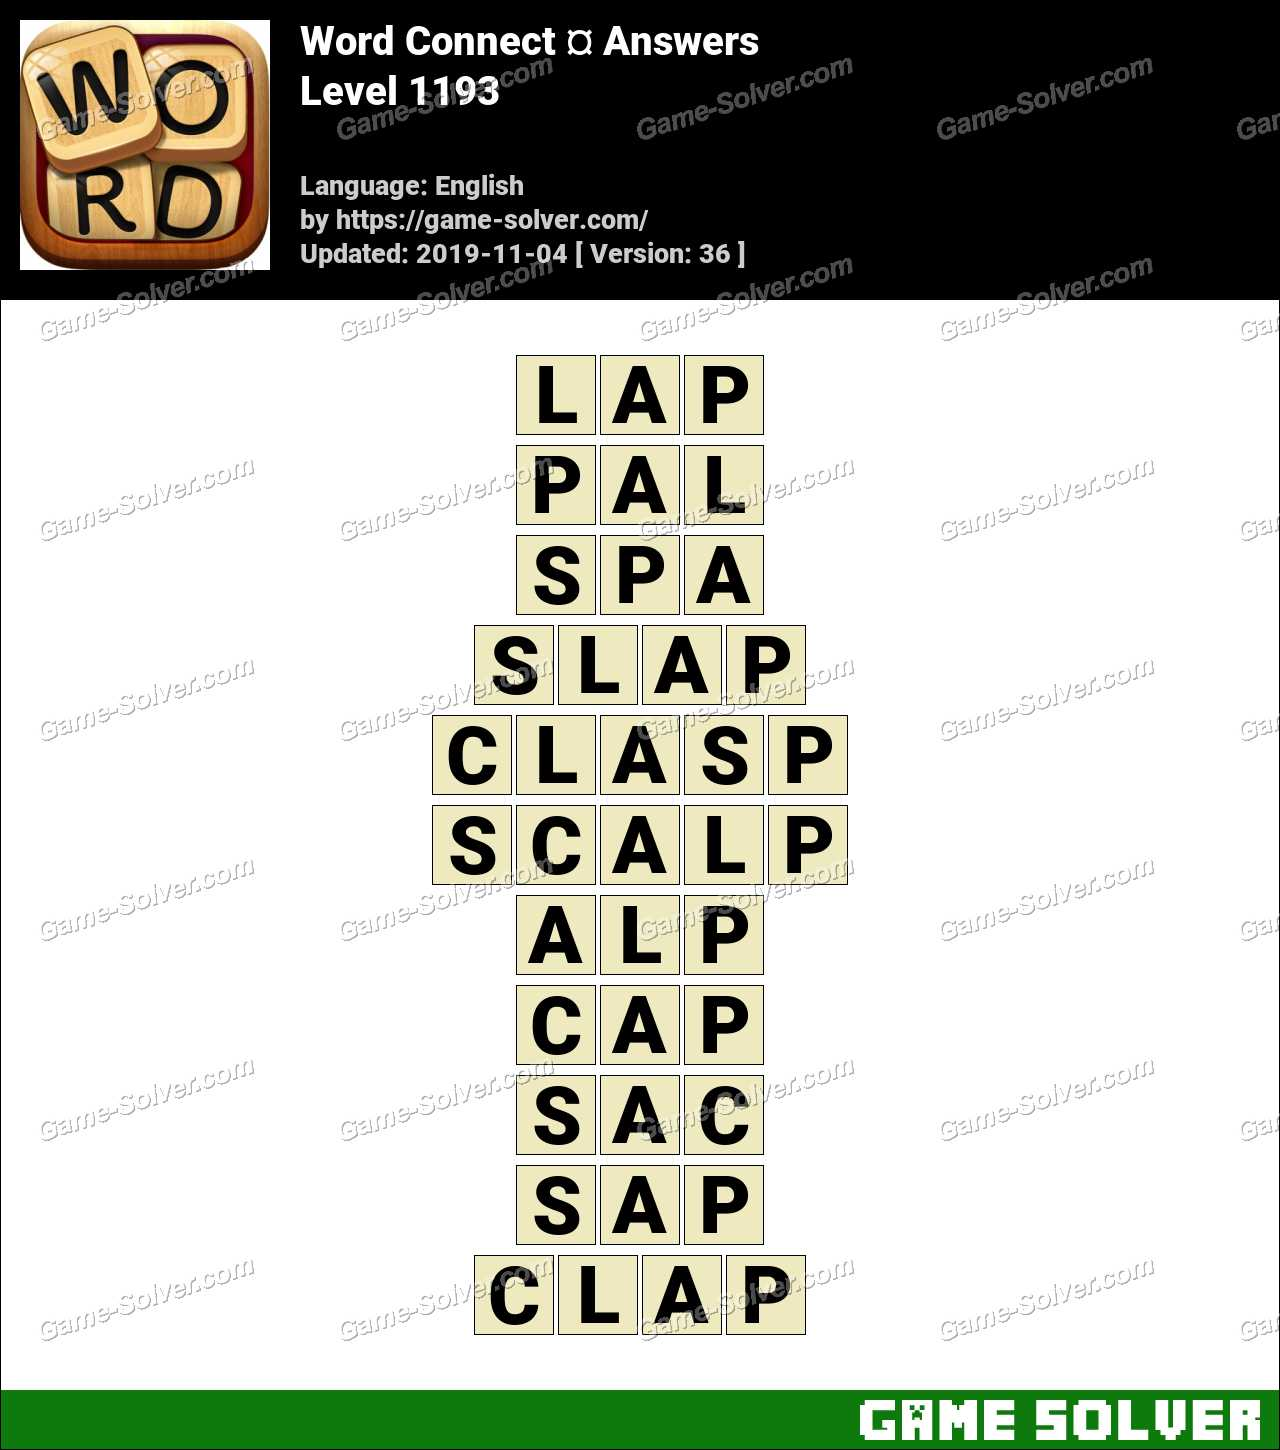 Word Connect Level 1193 Answers